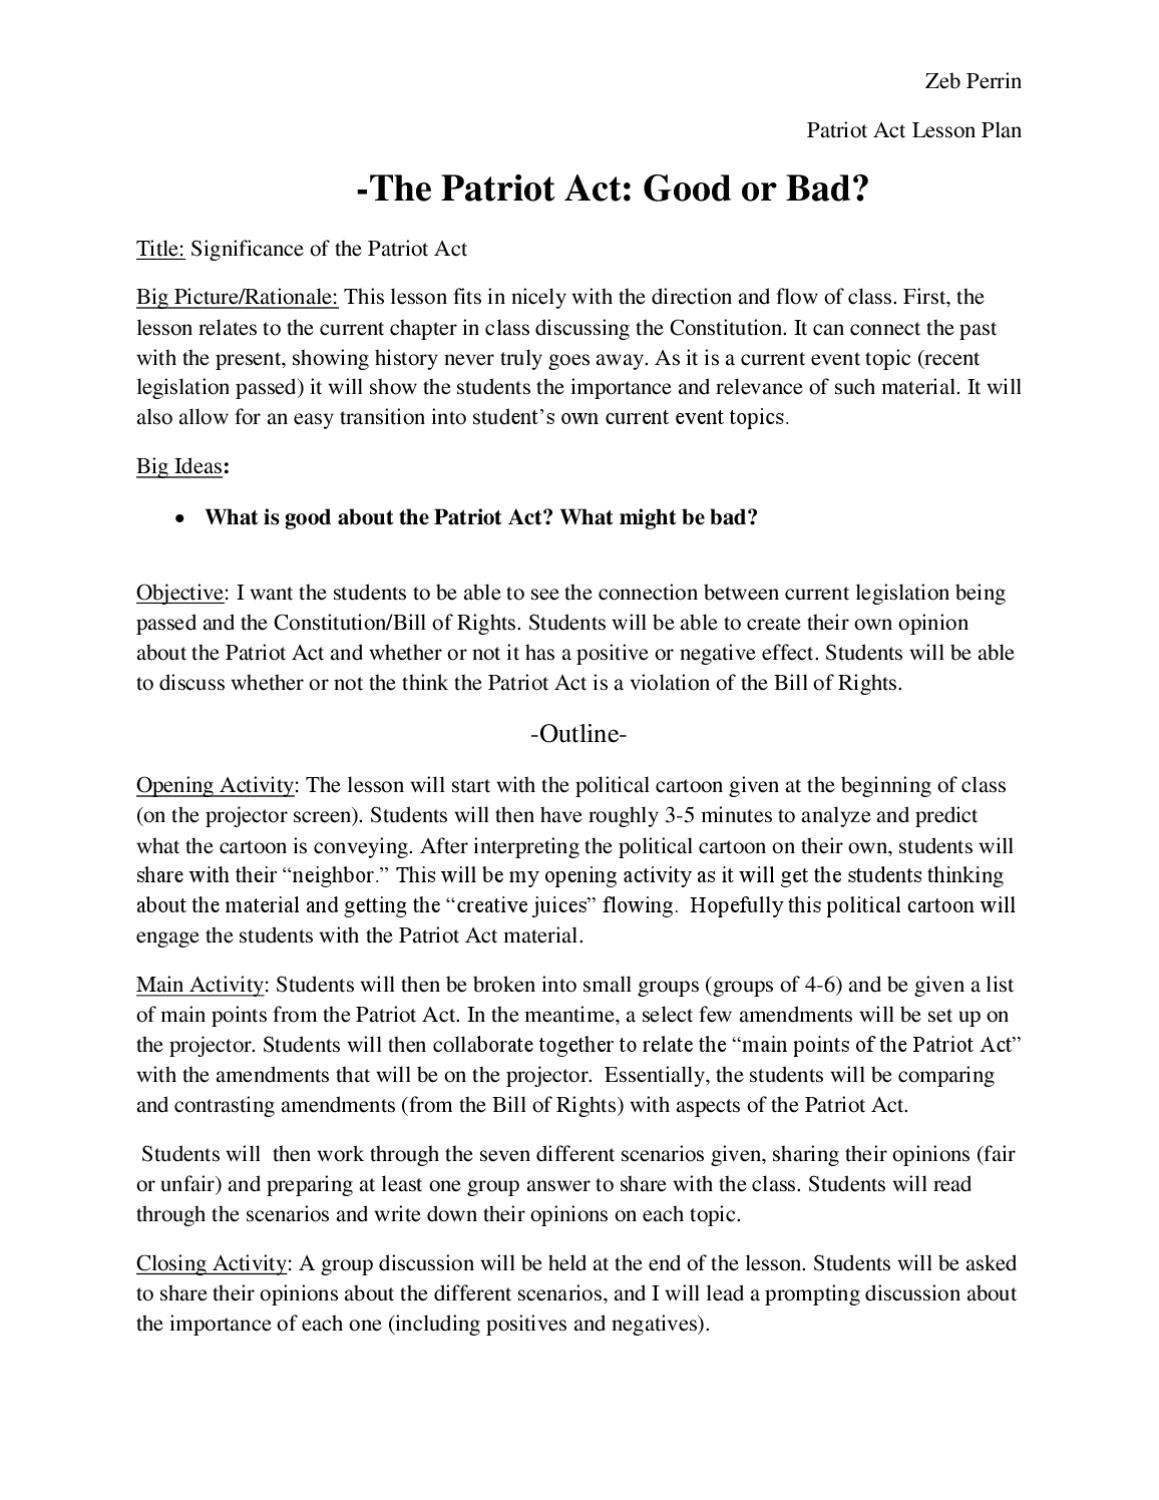 Bill Of Rights Scenario Worksheet the Patriot Act Lesson Plan by Zeb Perrin issuu